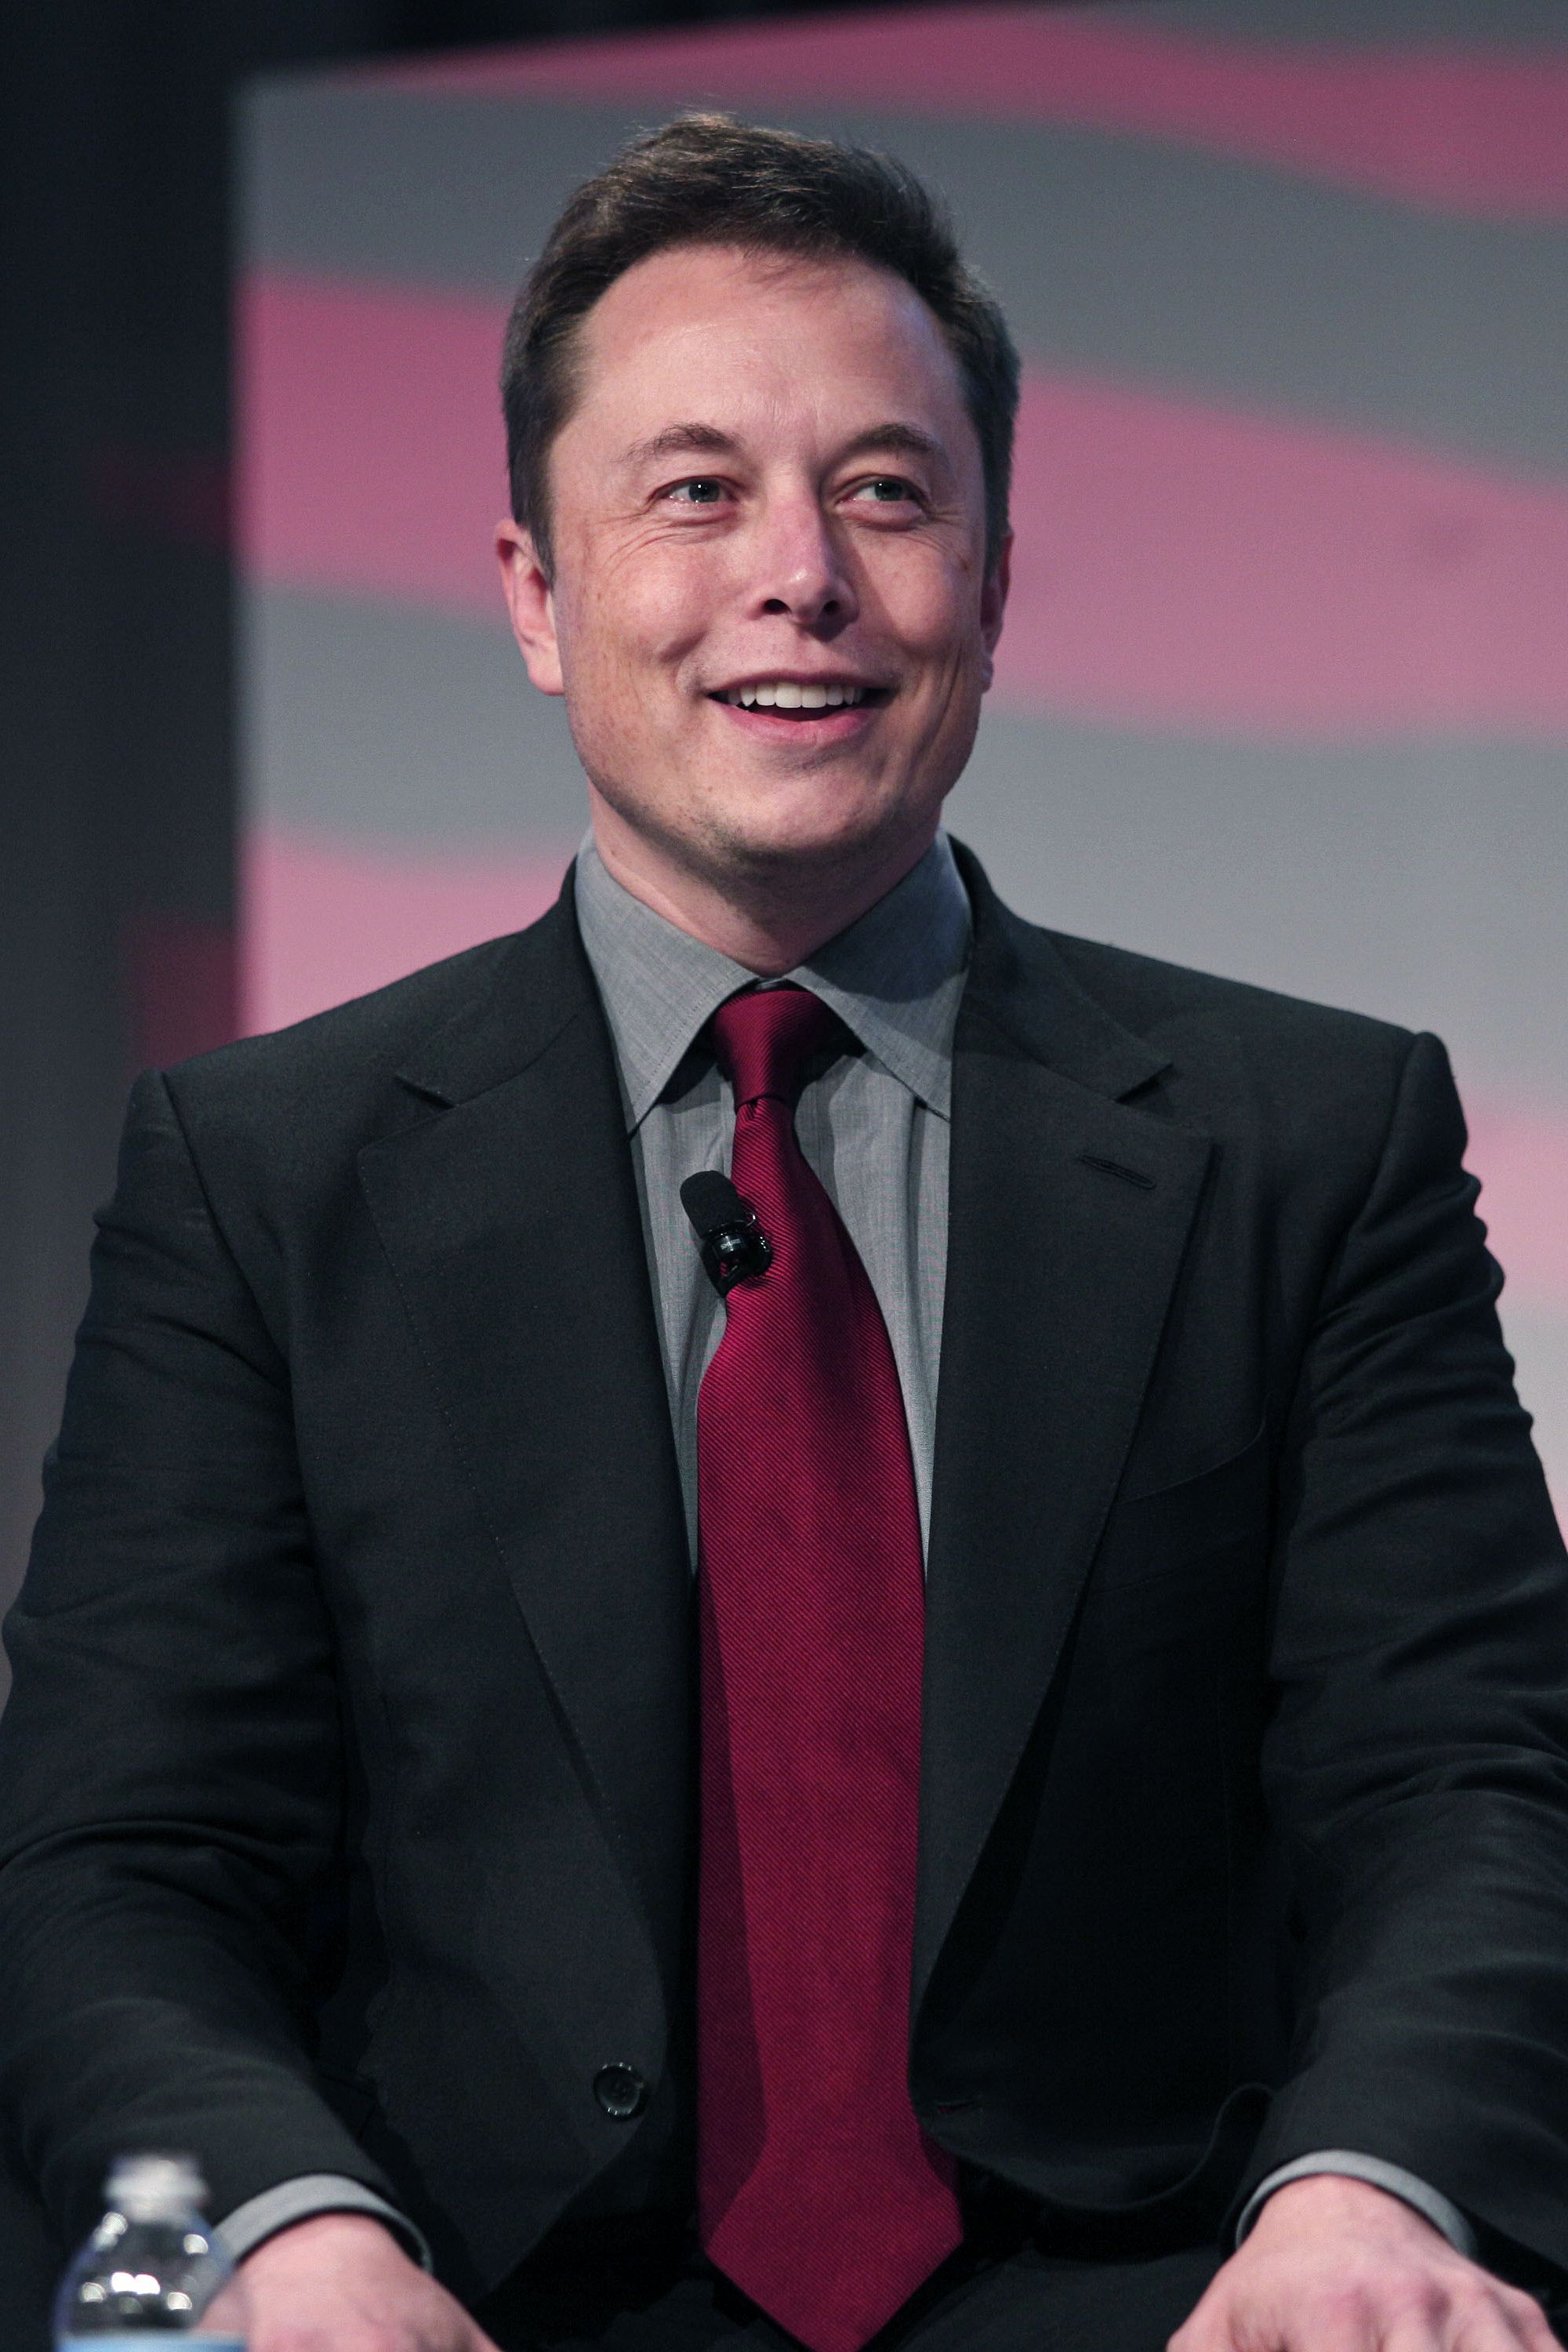 For years, Elon Musk personally interviewed new hires at SpaceX.